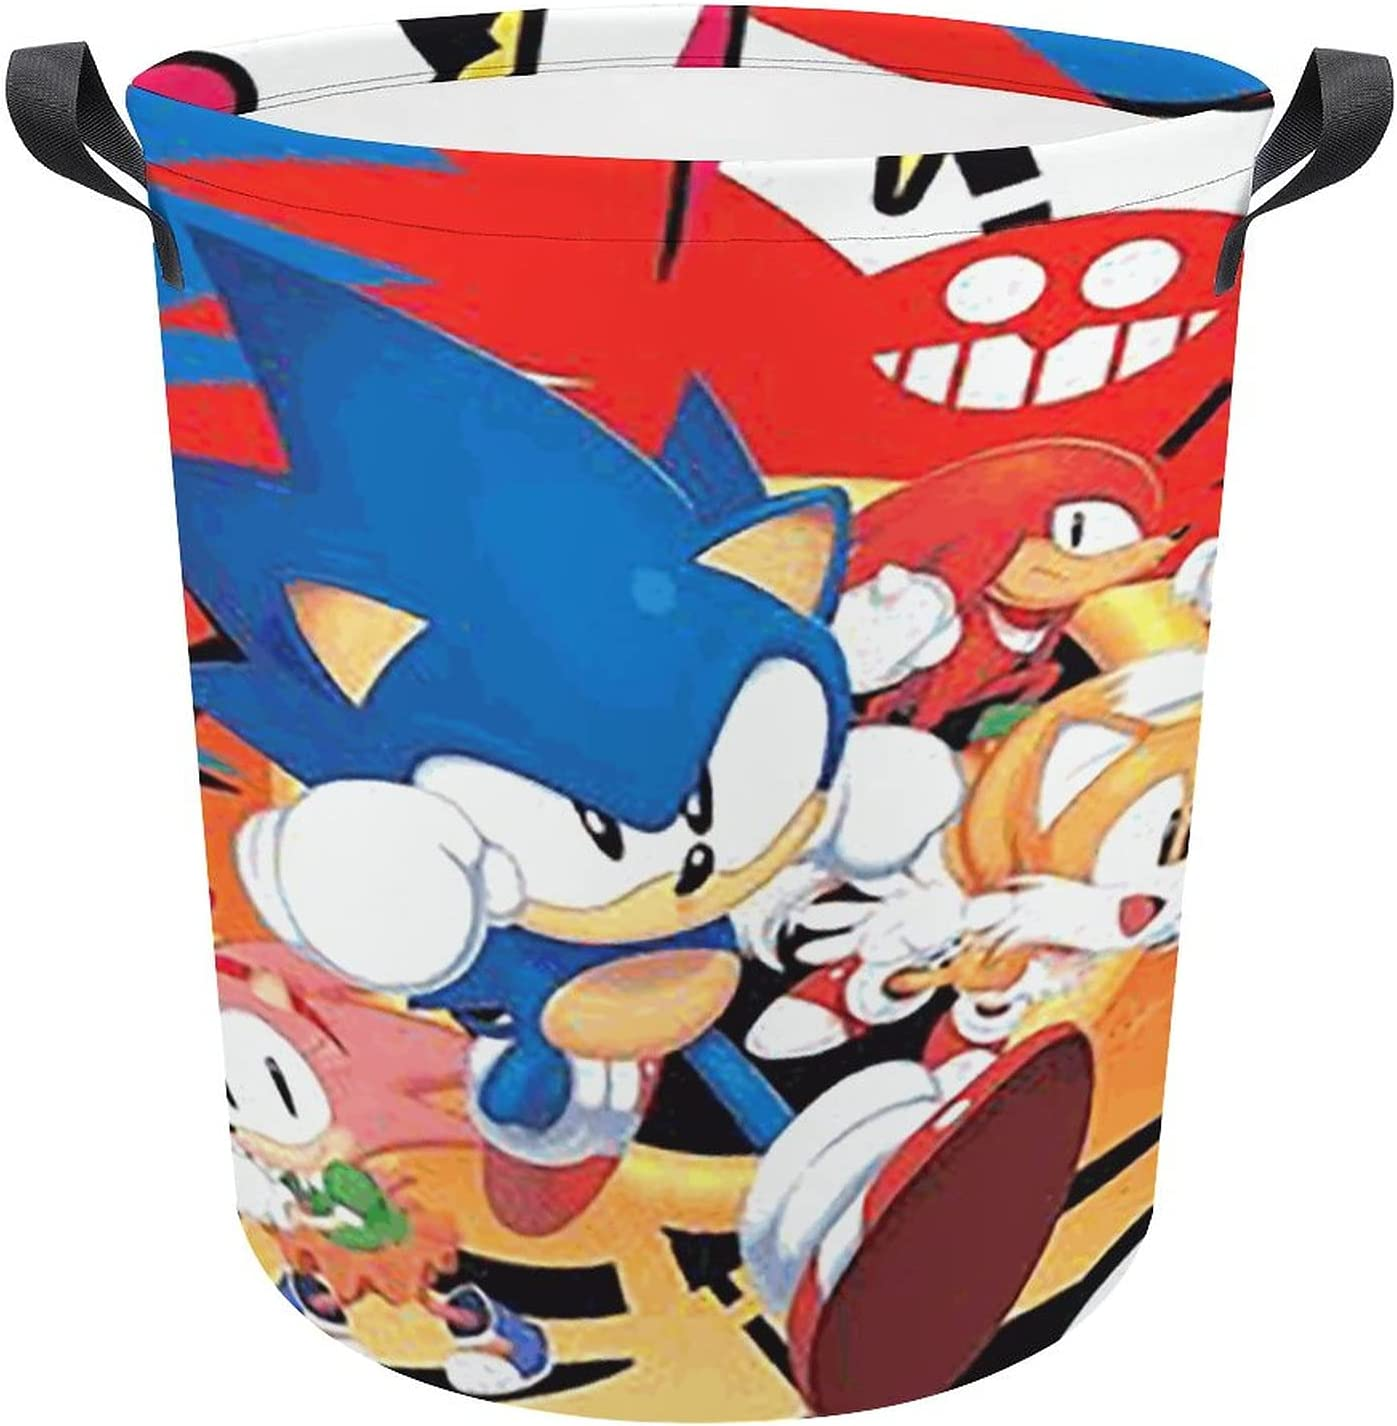 sonic Rapid rise and friends large capacity basket portable laundry folding Sales results No. 1